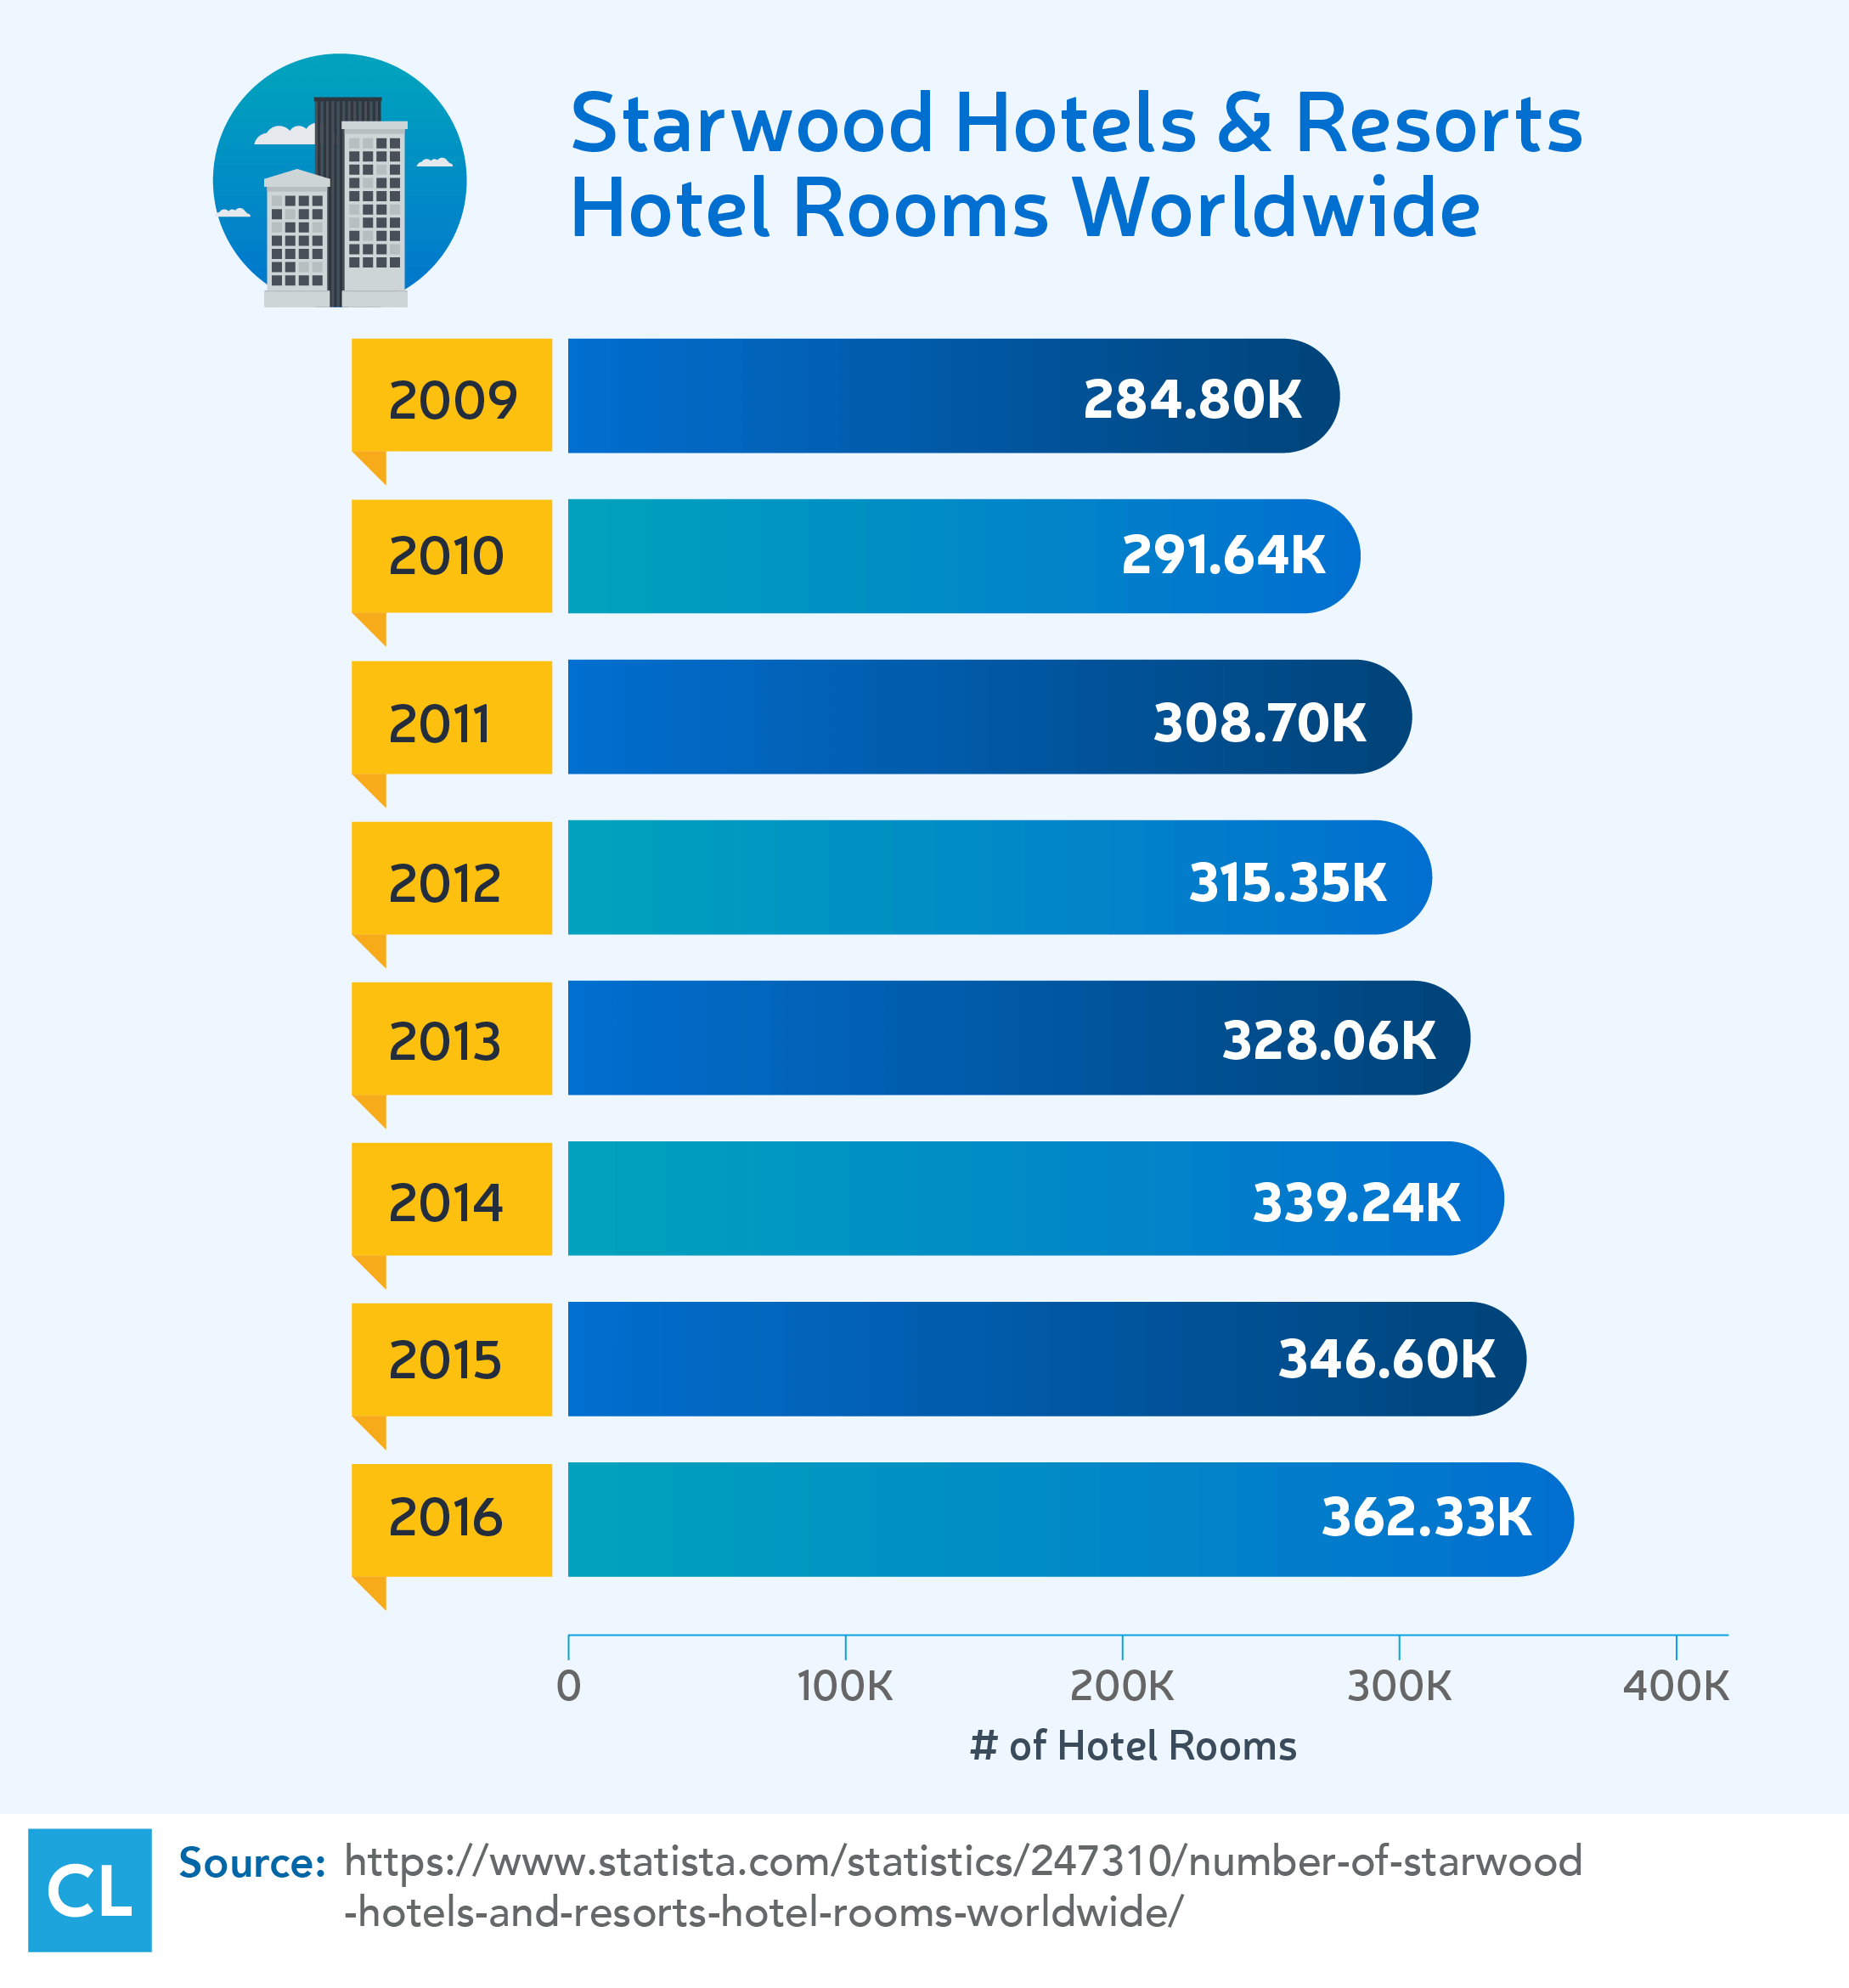 Starwood Hotels & Resorts Hotel Rooms Worldwide from 2009-2016